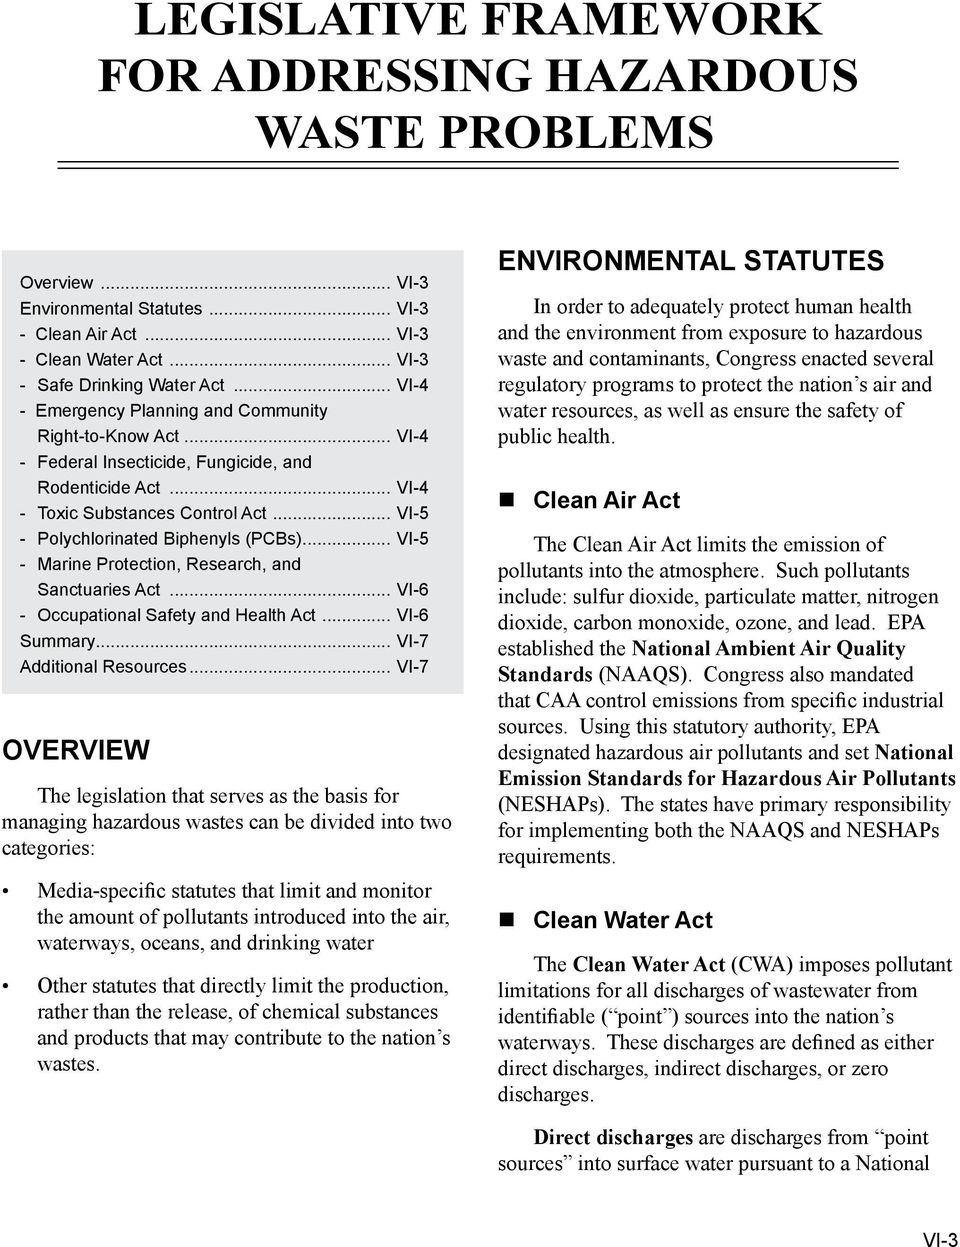 .. VI-5 - Polychlorinated Biphenyls (PCBs)... VI-5 - Marine Protection, Research, and Sanctuaries Act... VI-6 - Occupational Safety and Health Act... VI-6 Summary... VI-7 Additional Resources.